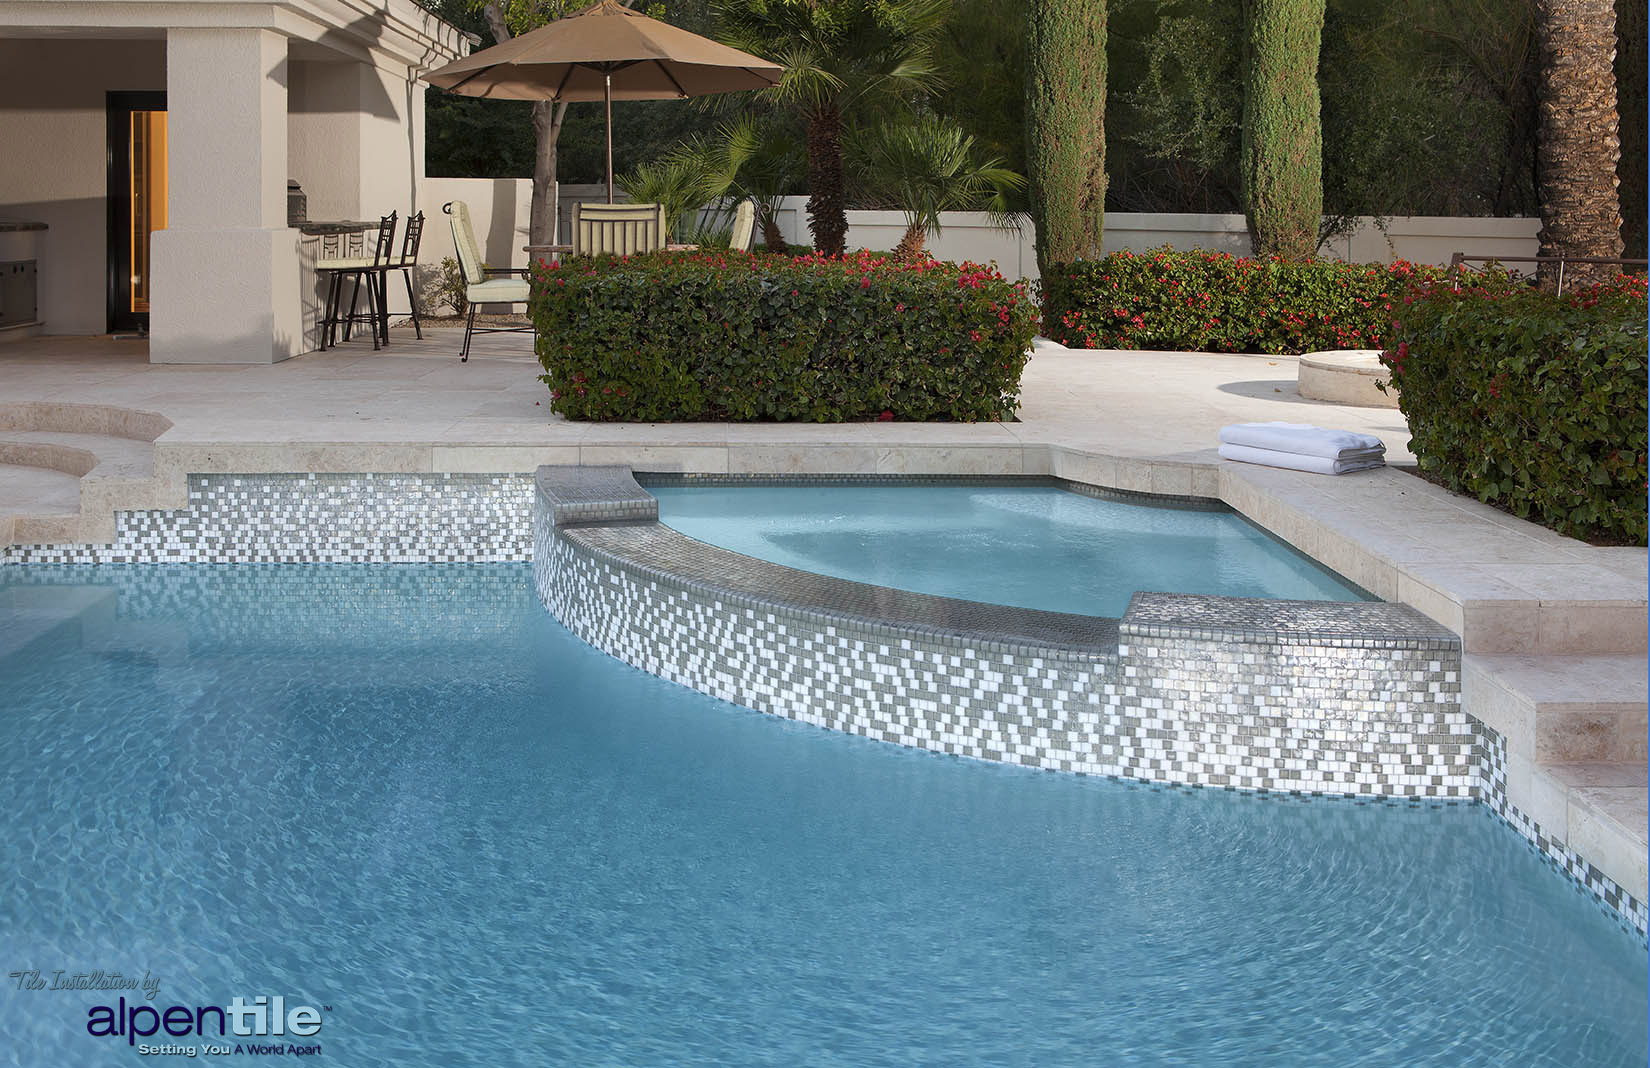 Alpentile glass mosaic swimming pool designs alpentile for Pool tile designs